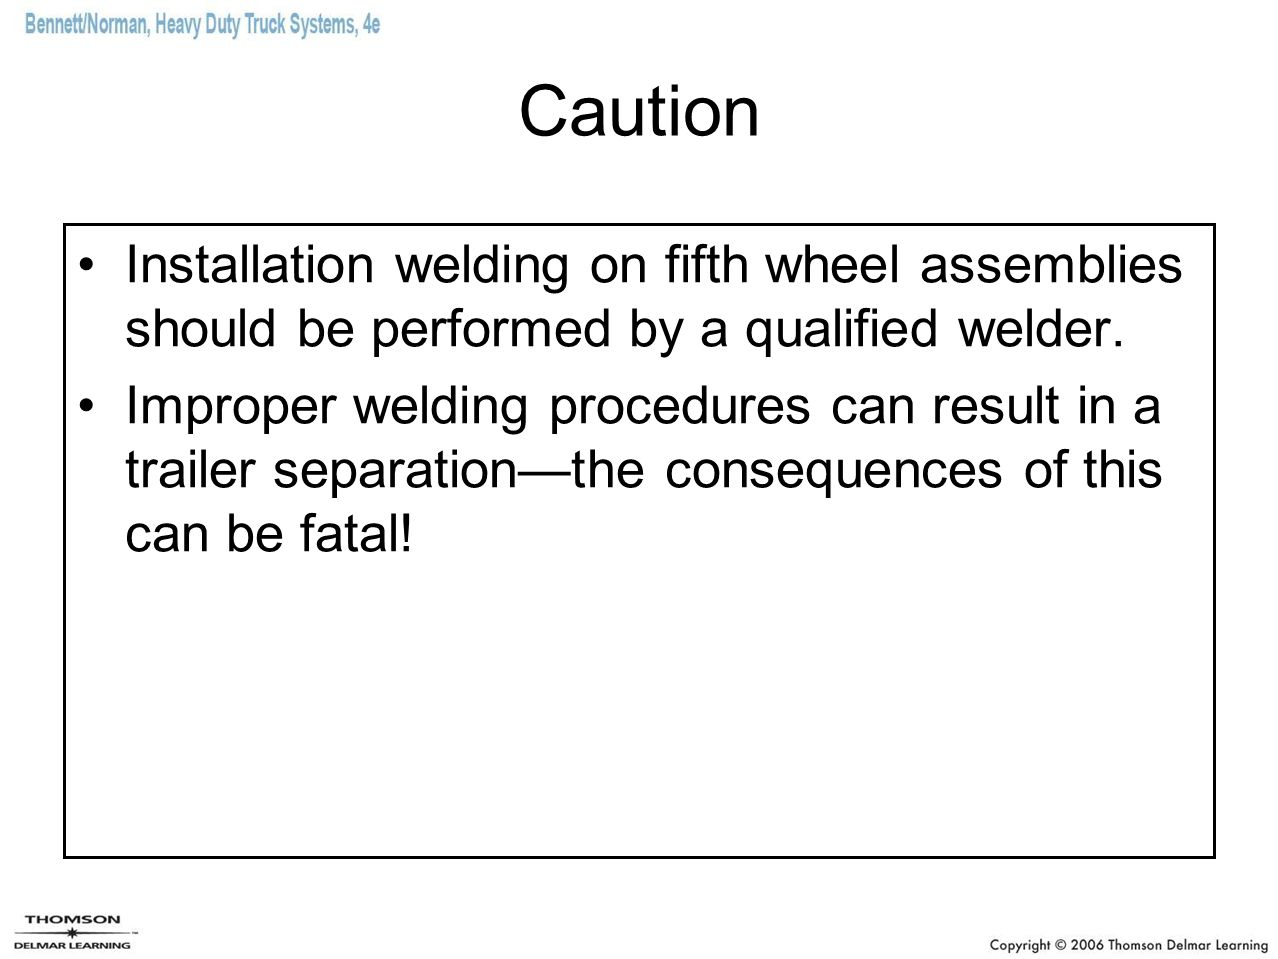 Caution Installation welding on fifth wheel assemblies should be performed by a qualified welder. Improper welding procedures can result in a trailer